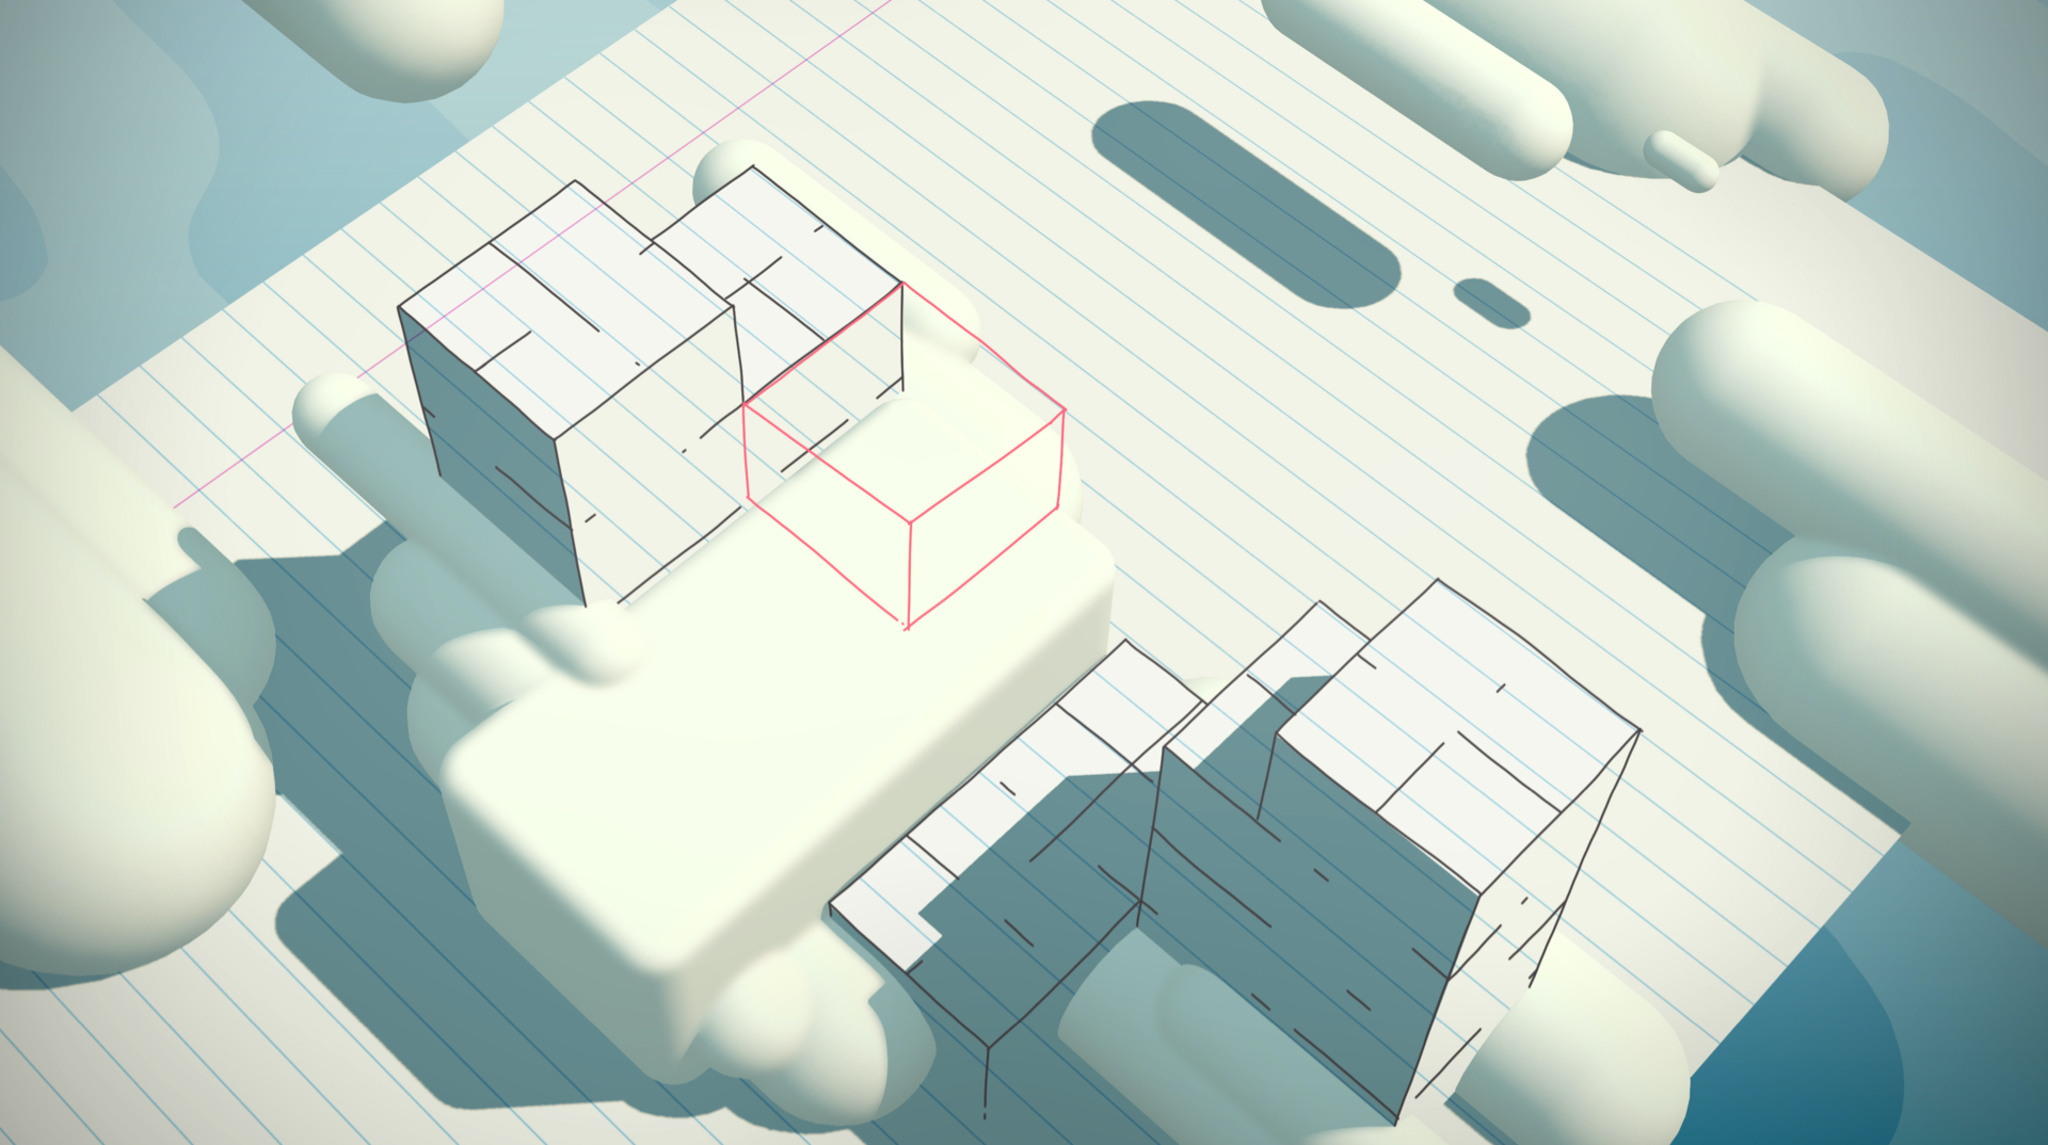 Early sketch of where cards fall showing card items in 3D environment